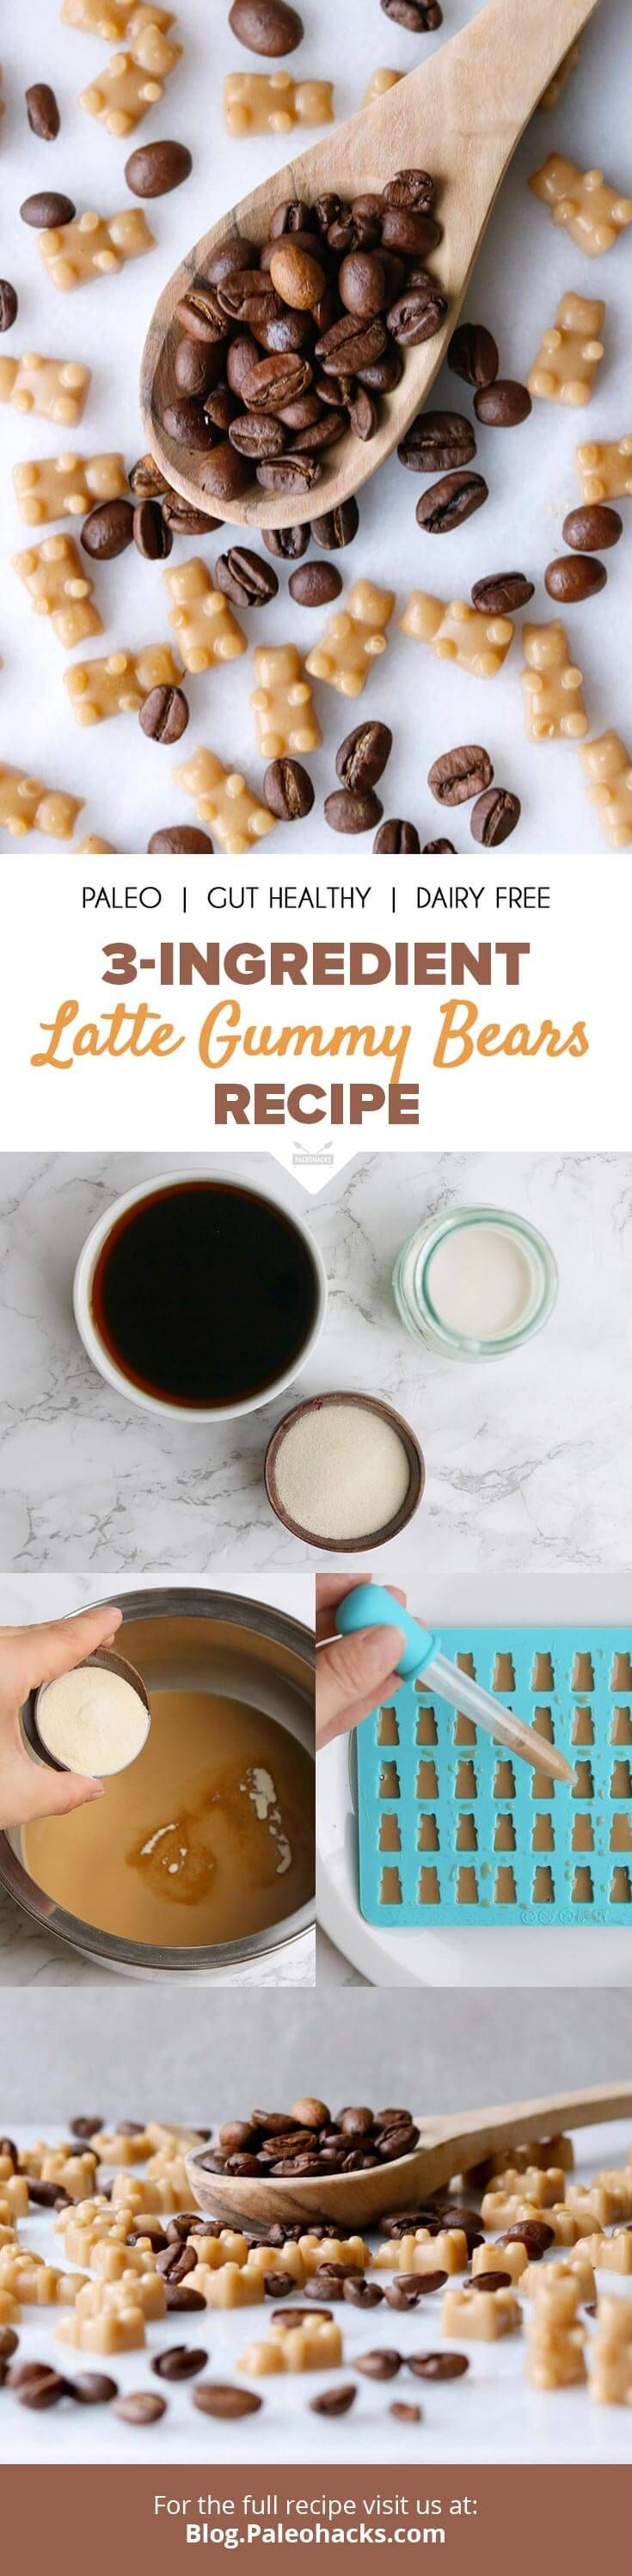 These creamy, 3-ingredient latte gummies are the perfect pick-me-up treat. Get the full recipe here: http://paleo.co/lattegummies